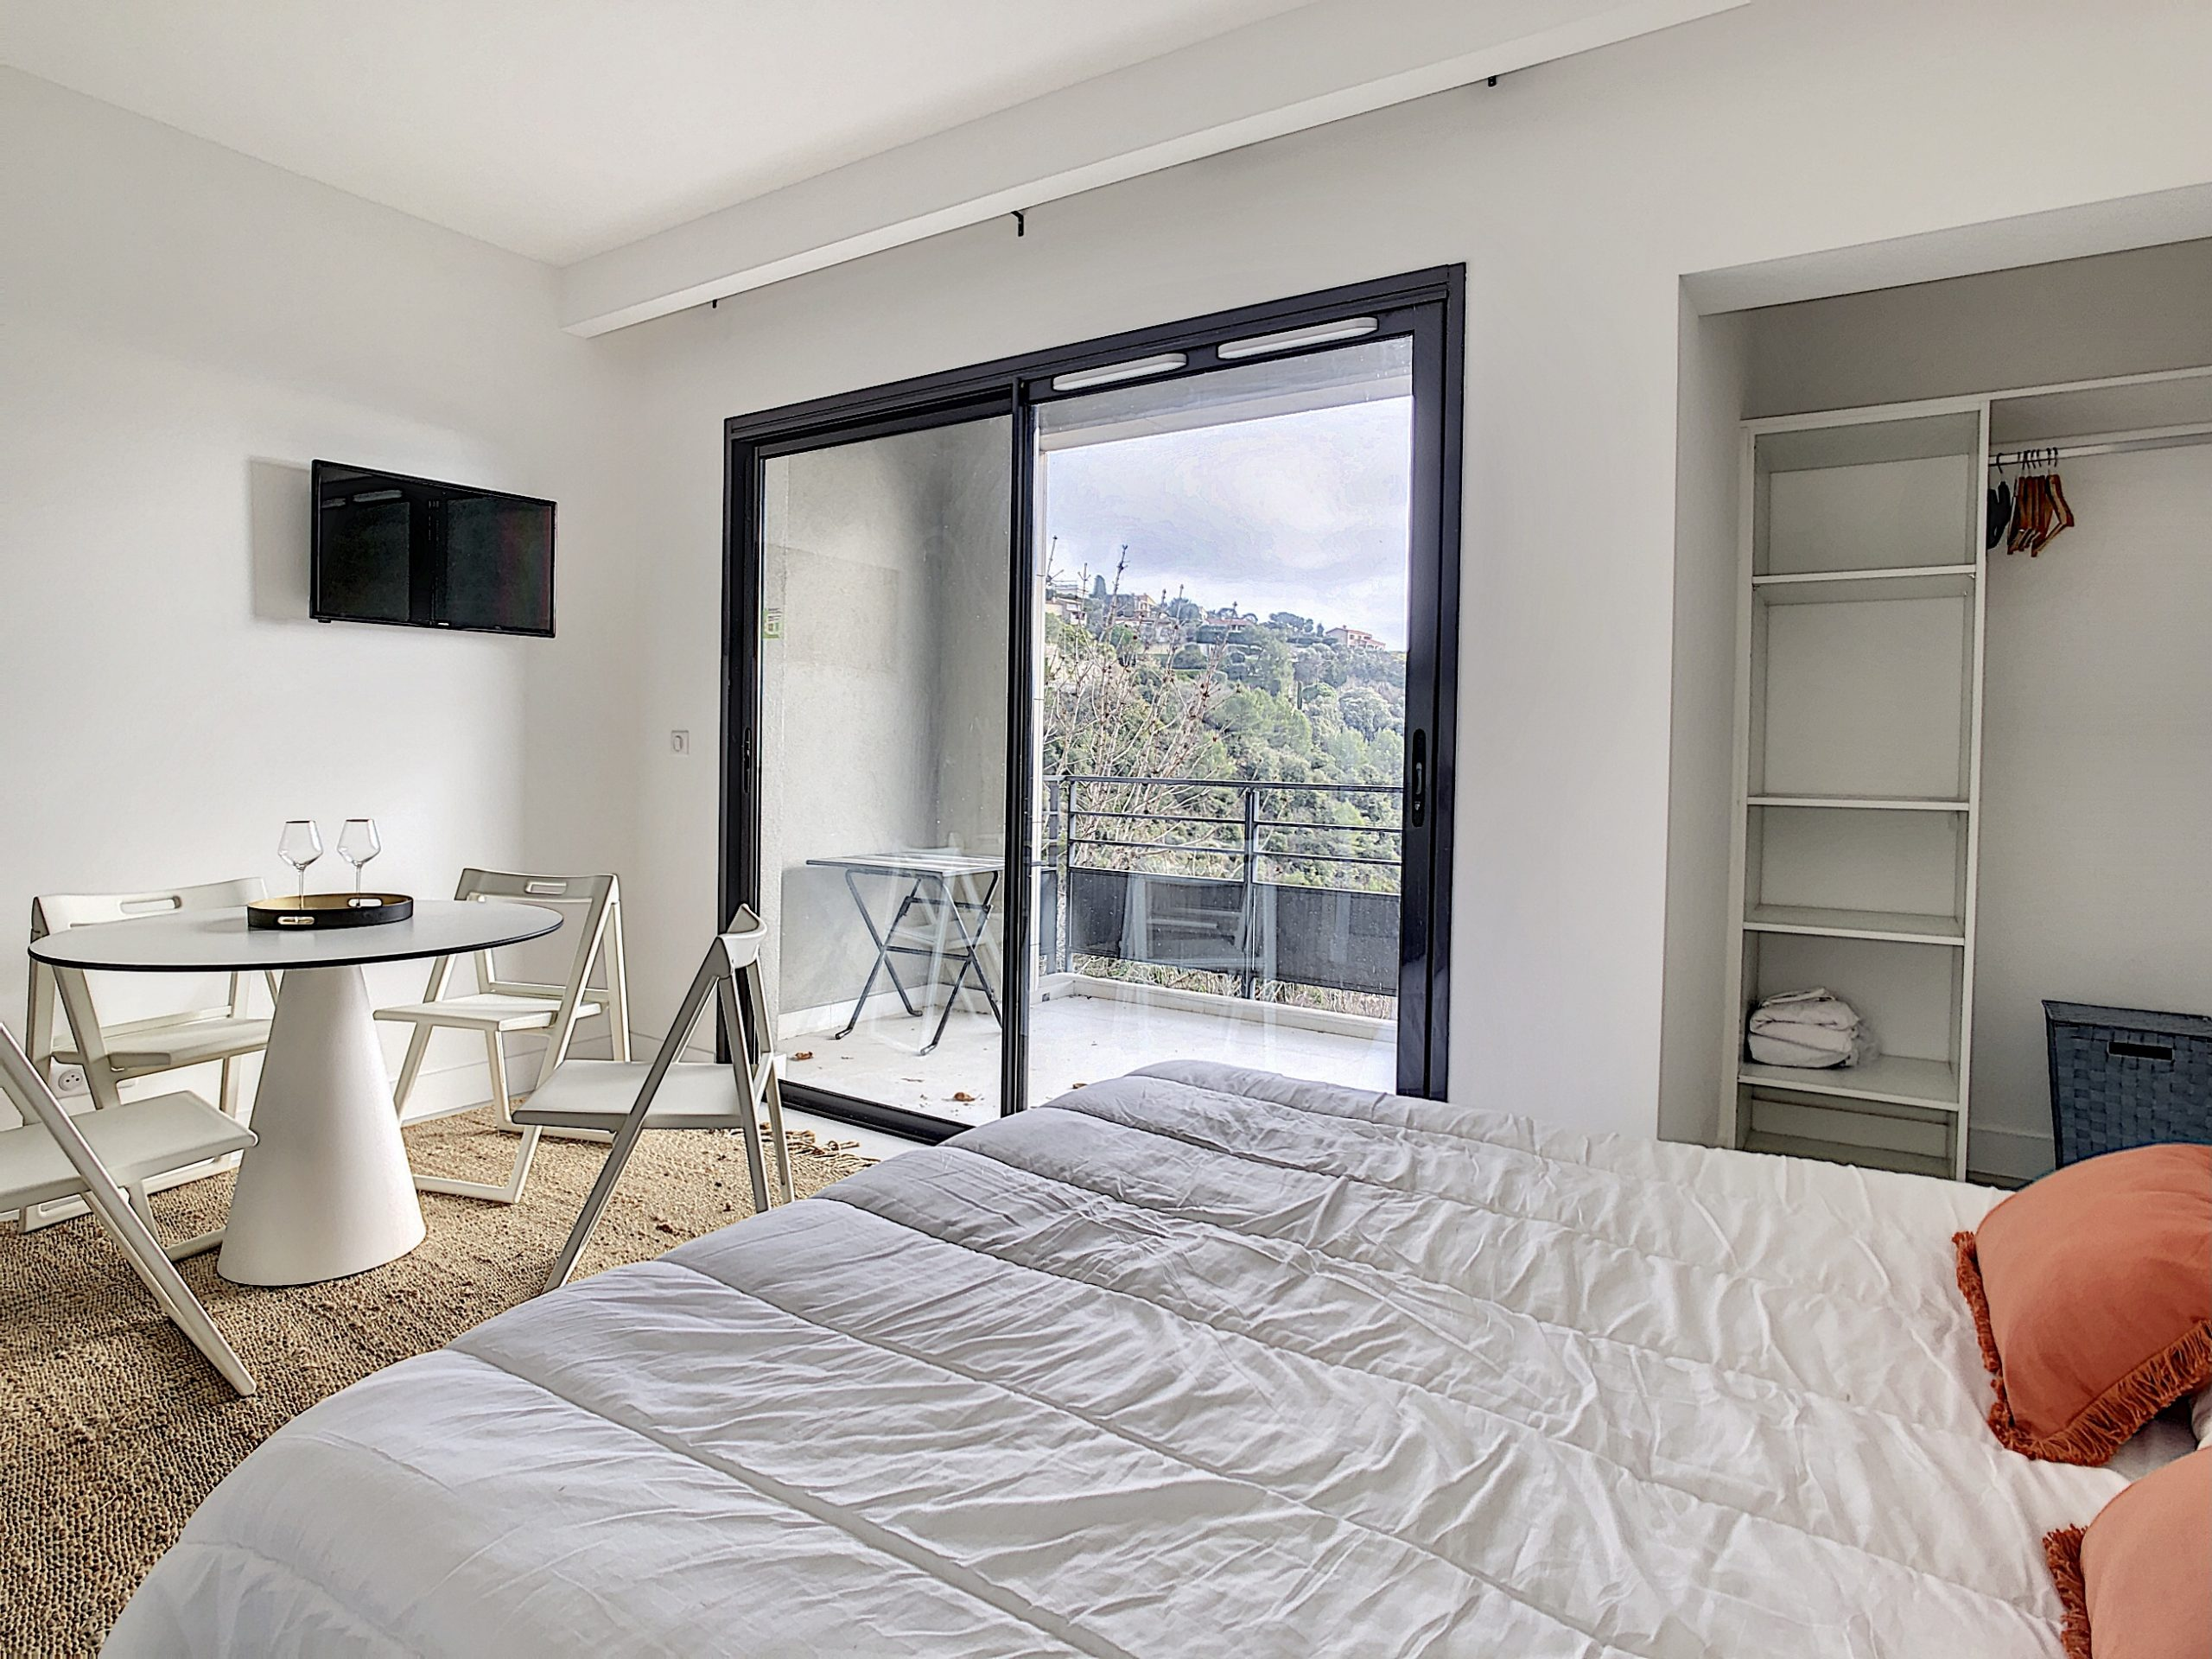 Eze – Pleasant renovated 2 room apartment with sea view terrace